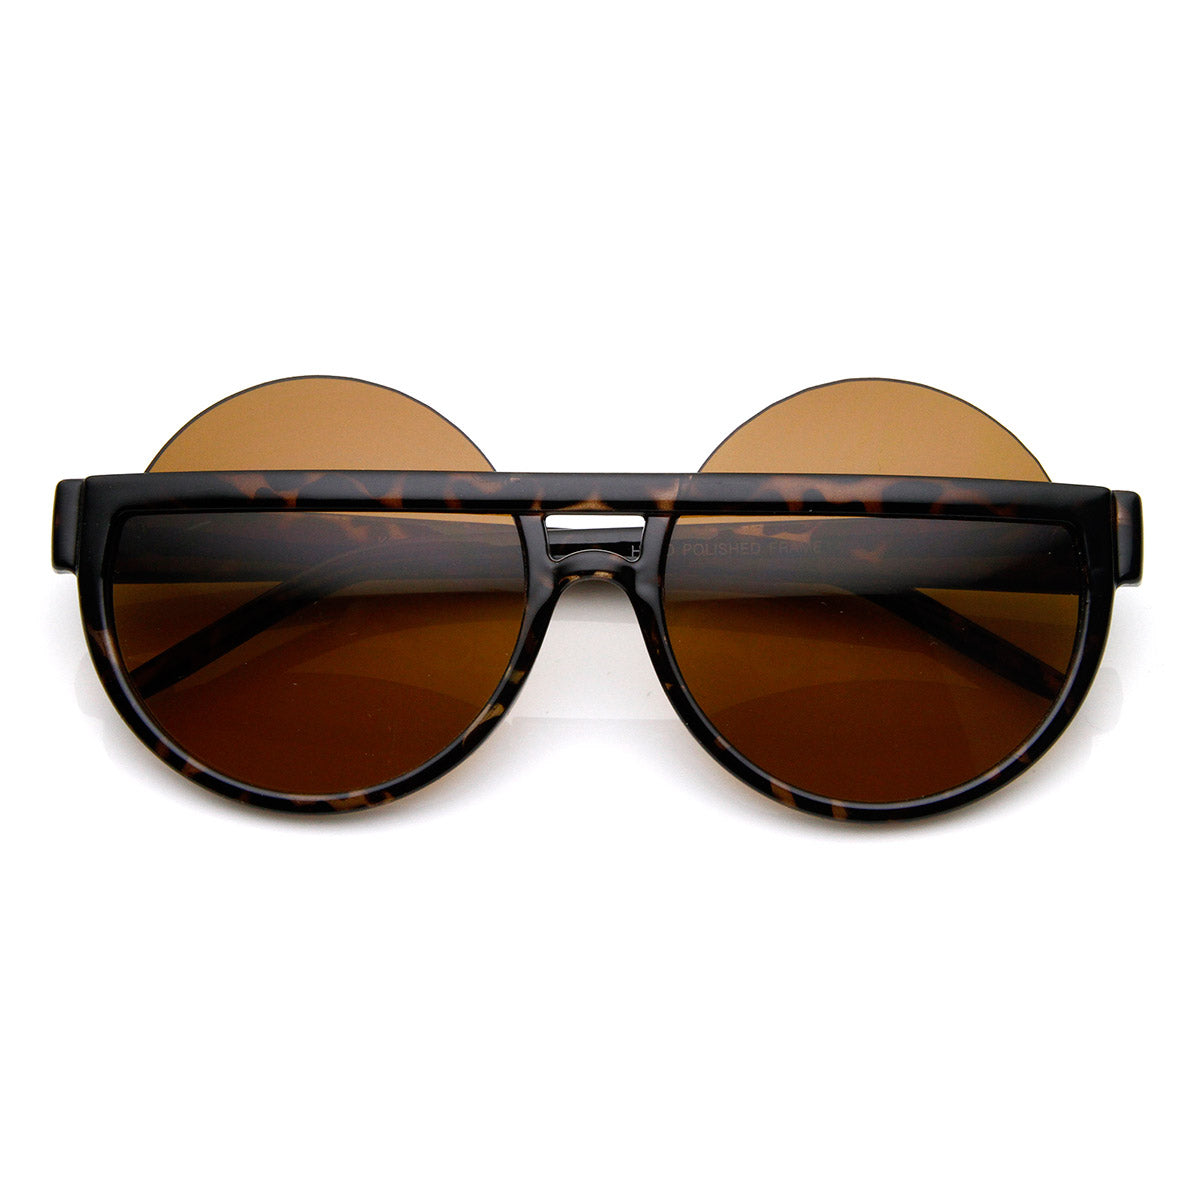 d160b3468 Big Mod Round Circle Half Frame Oversized Sunglasses - sunglass.la